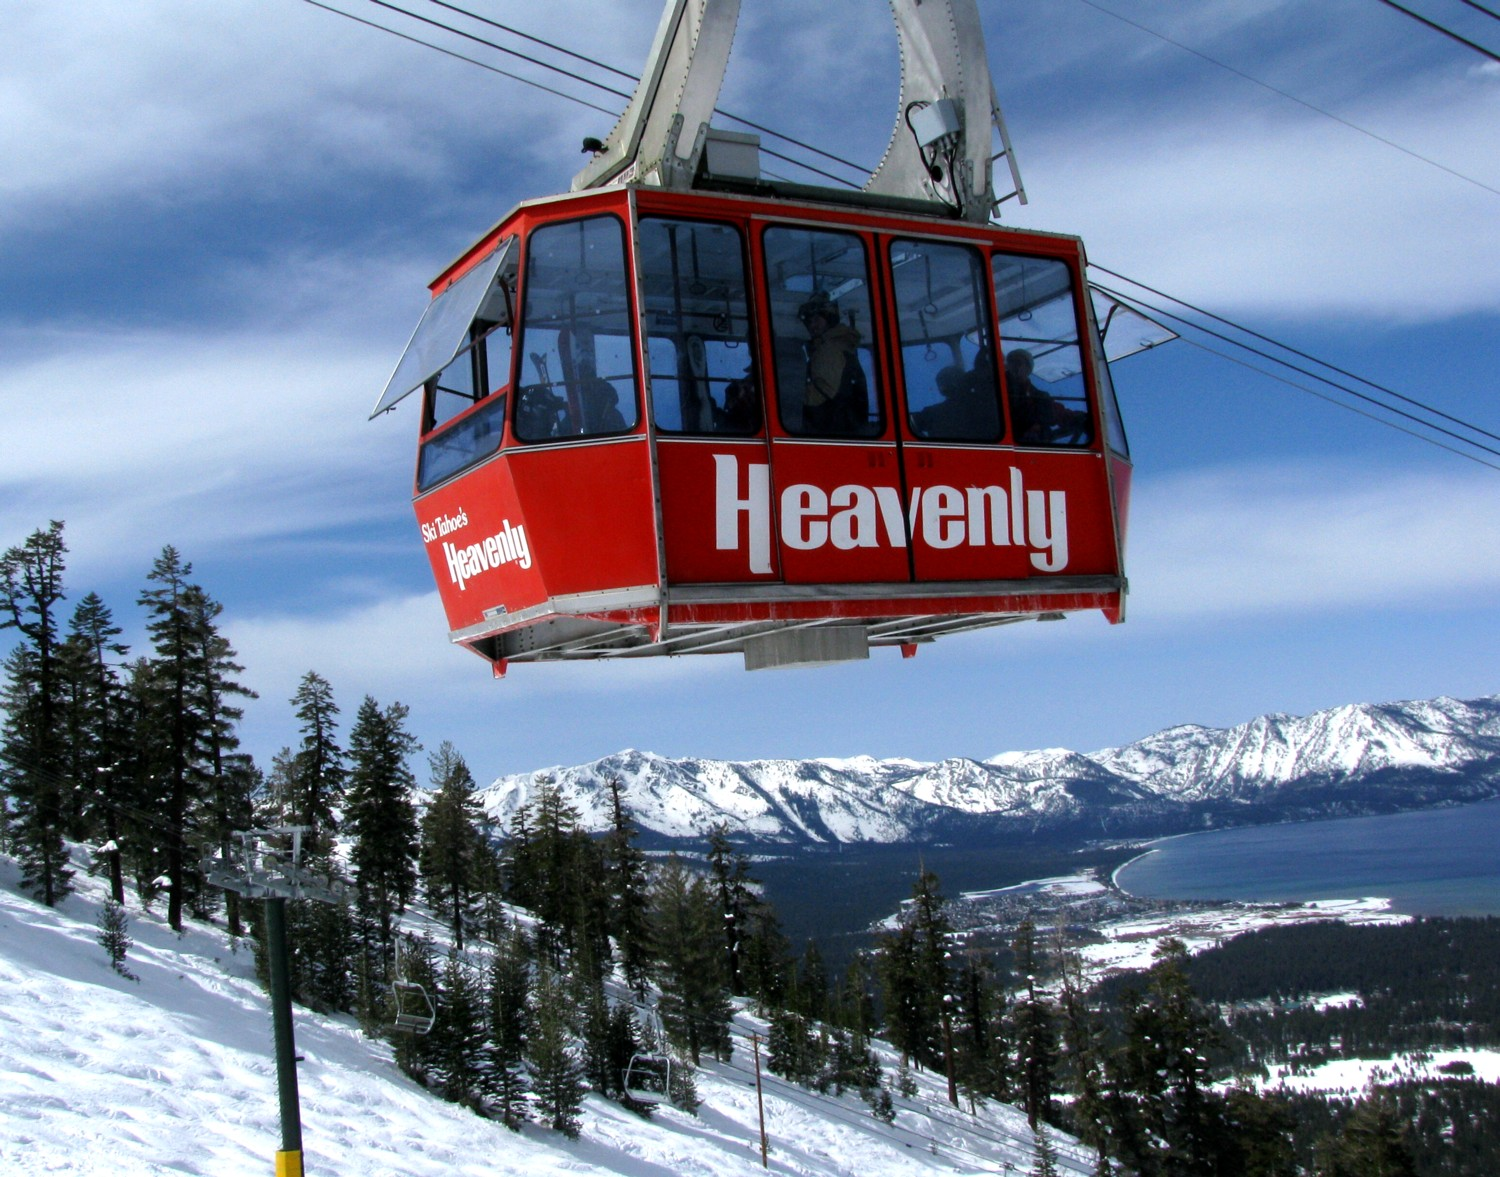 The Heavenly gondola with views to Lake Tahoe. Vail Resorts is assuming management of Zalanta Resort at the Village, a new luxury condominium property, South Lake Tahoe's first whole-ownership luxury condominium development in more than 30 years, steps from the Heavenly Mountain Gondola © 2016 Karen Rubin/goingplacesfarandnear.com